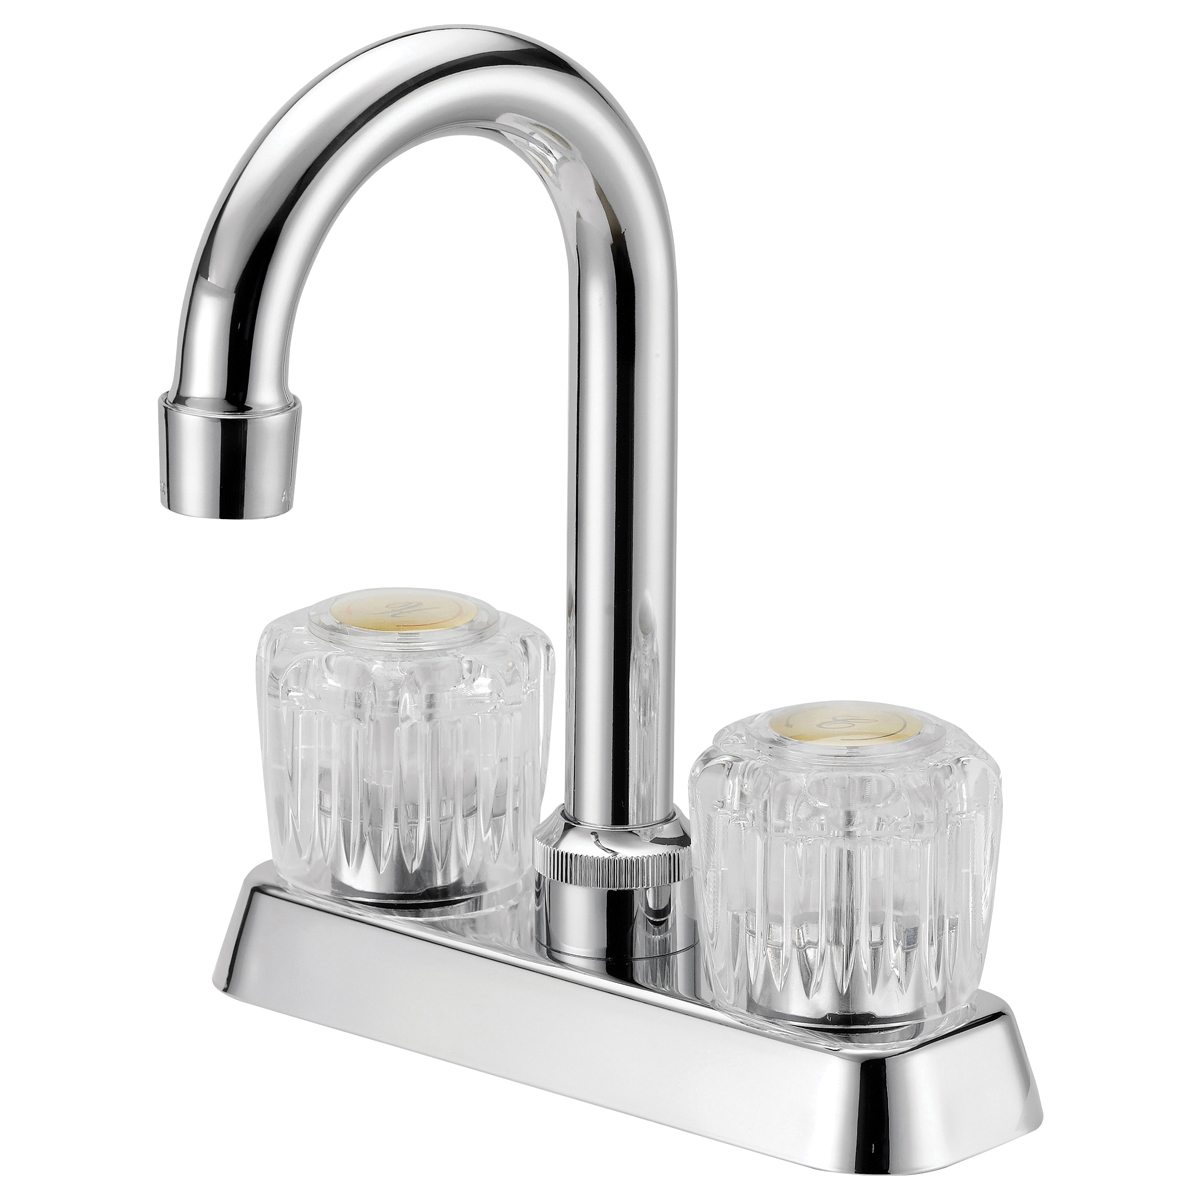 Picture of Boston Harbor PFN47850CP-LF Bar Sink Faucet, 1.8 gpm, 2-Faucet Handle, 3-Faucet Hole, Metal, Chrome